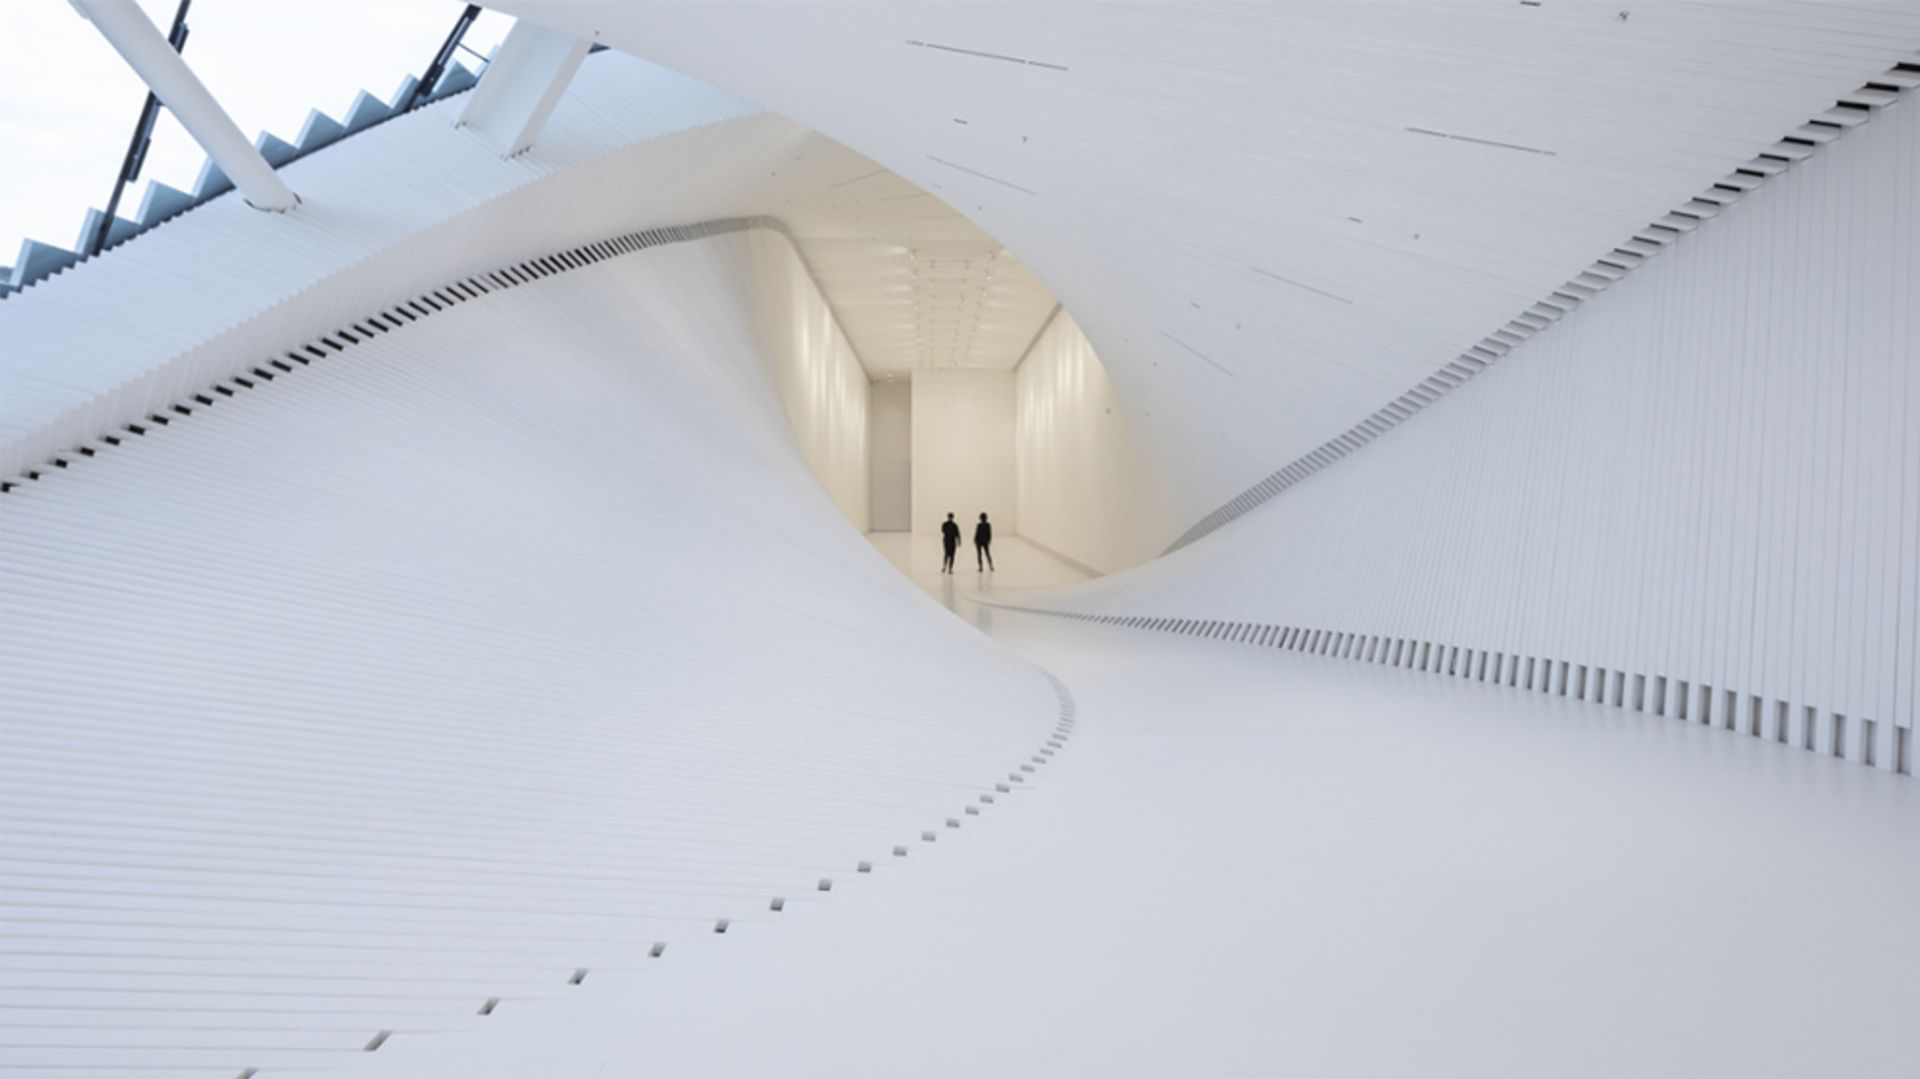 This Twisting Art Museum in Norway May Actually Be the World's Coolest Bridge